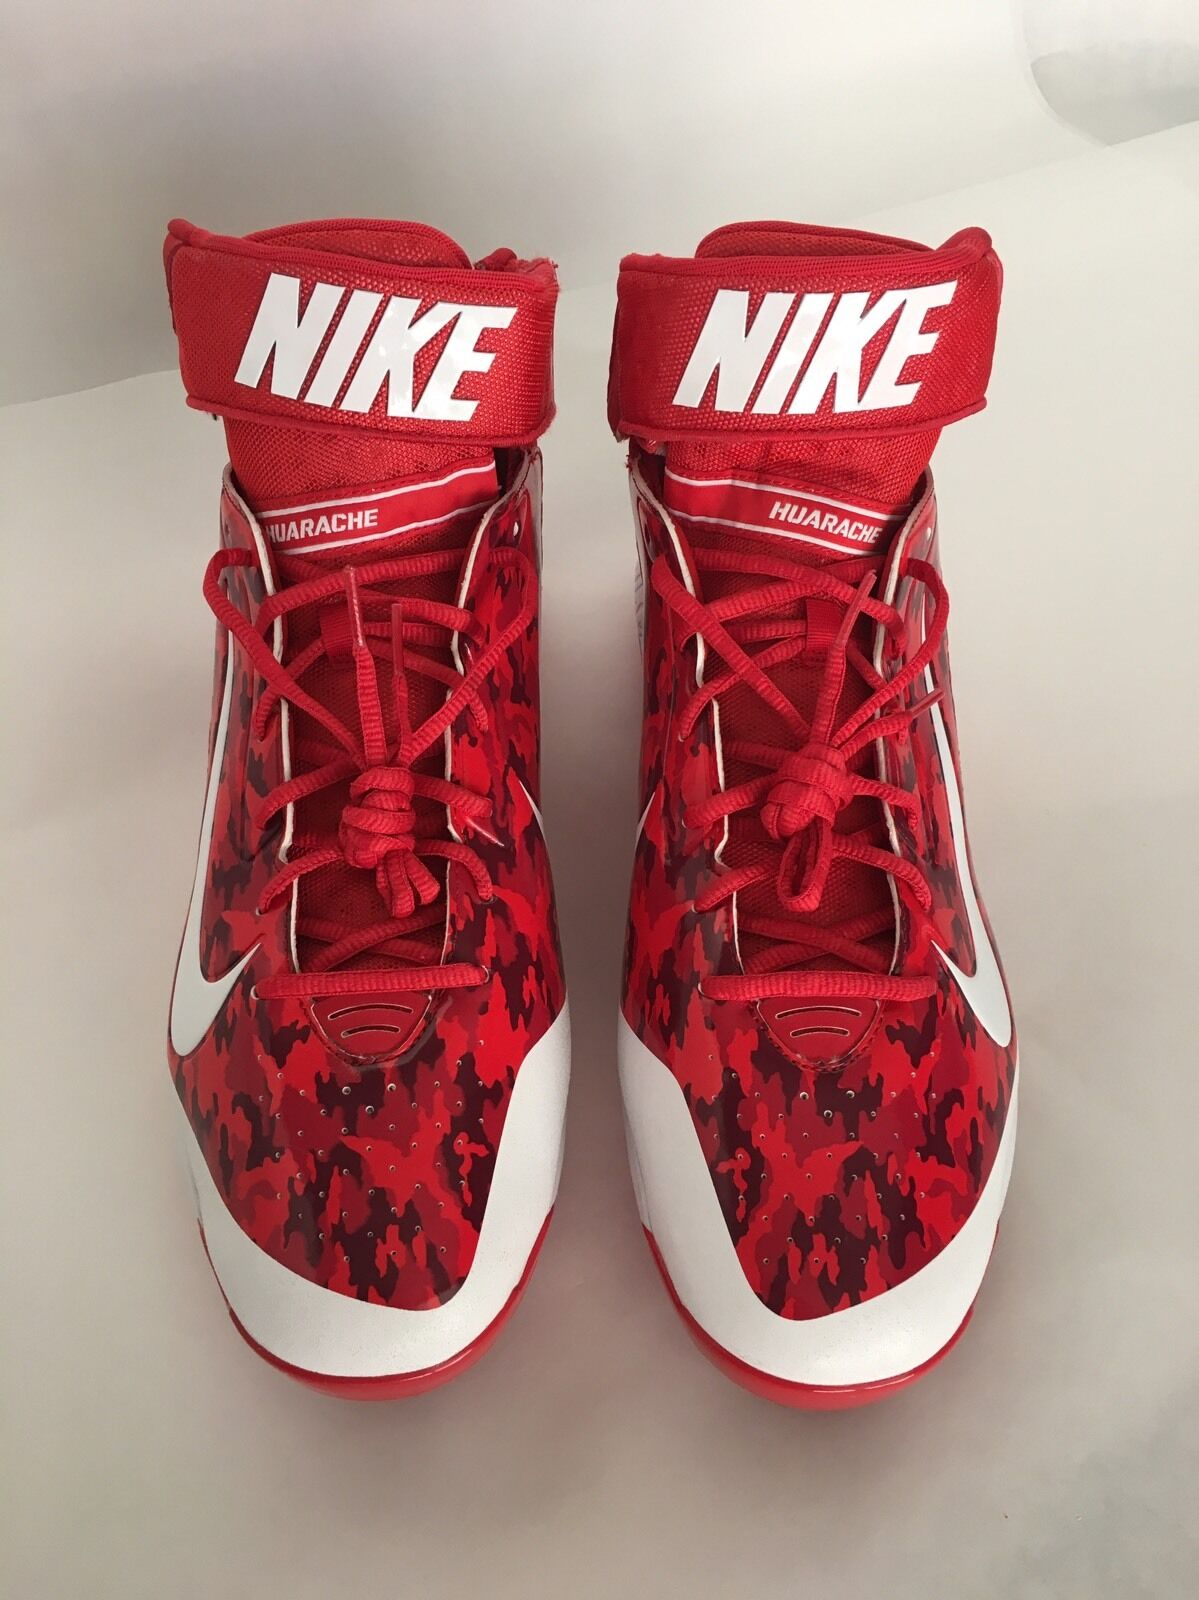 New Nike Air Huarache Pro Mid Metal Baseball Cleats Red Camo White Comfortable The most popular shoes for men and women